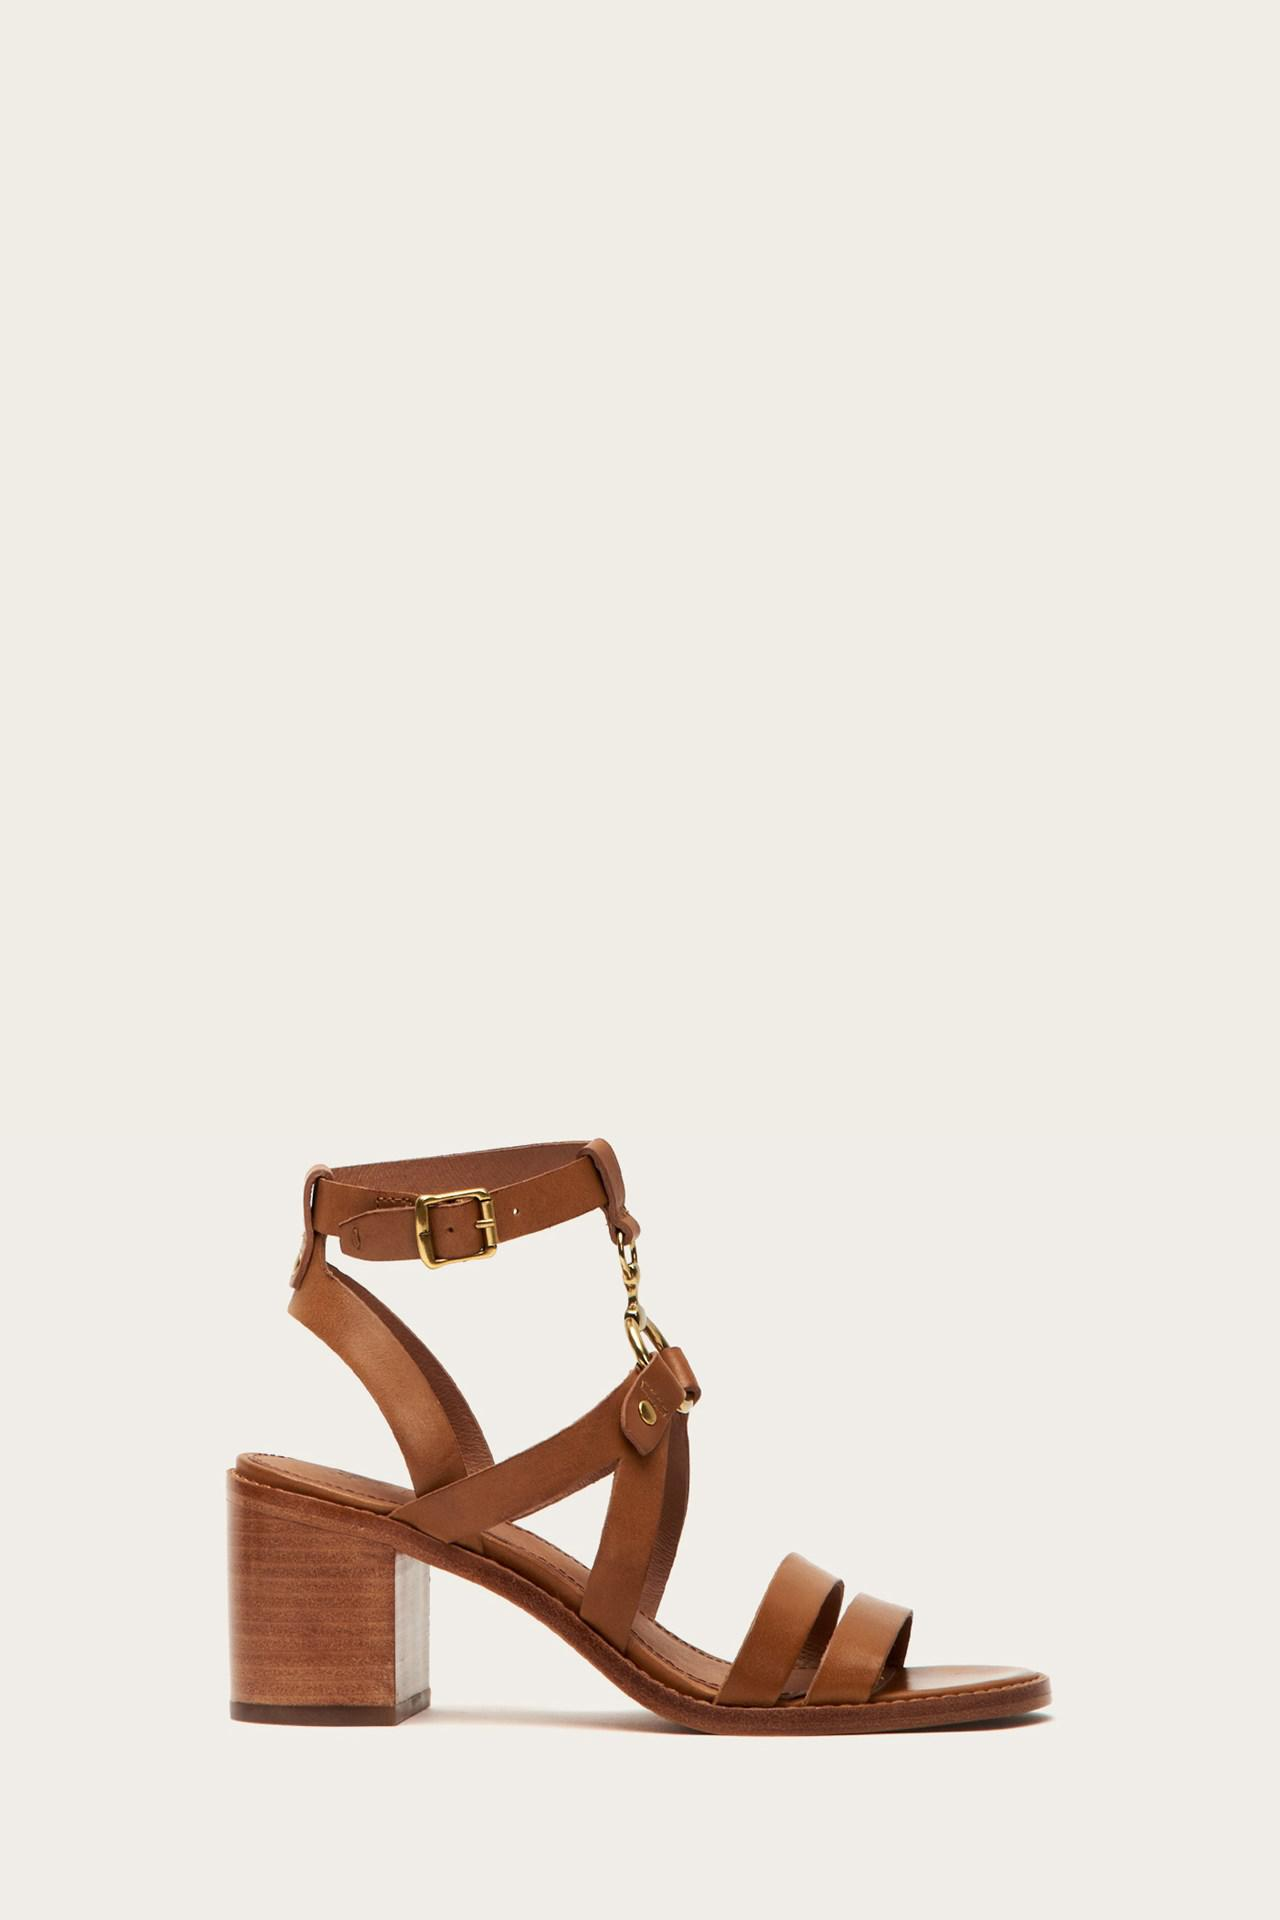 2537ee1120d87 Lyst - Frye Bianca Harness Sandal in Brown